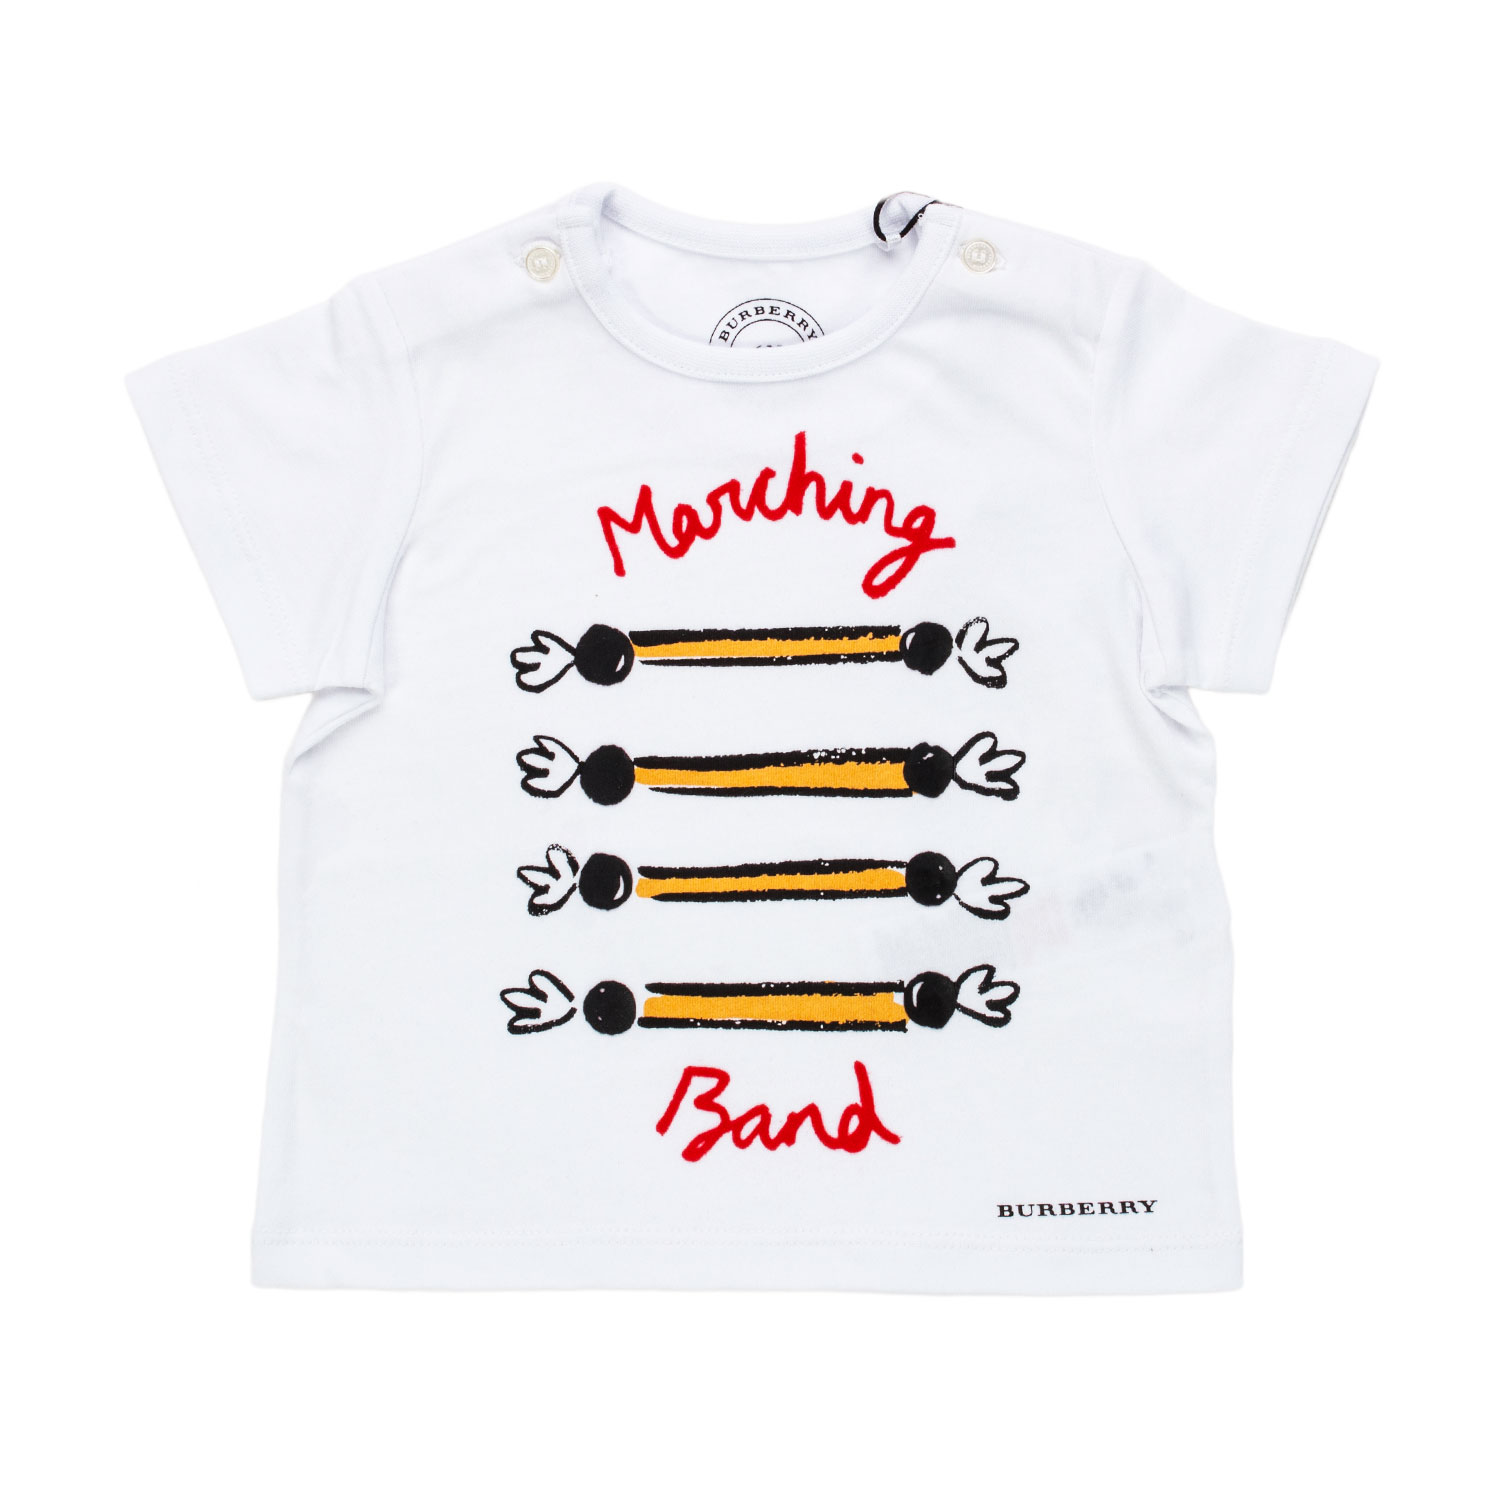 Burberry T Shirt Baby Marching Band Bianca annameglio shop